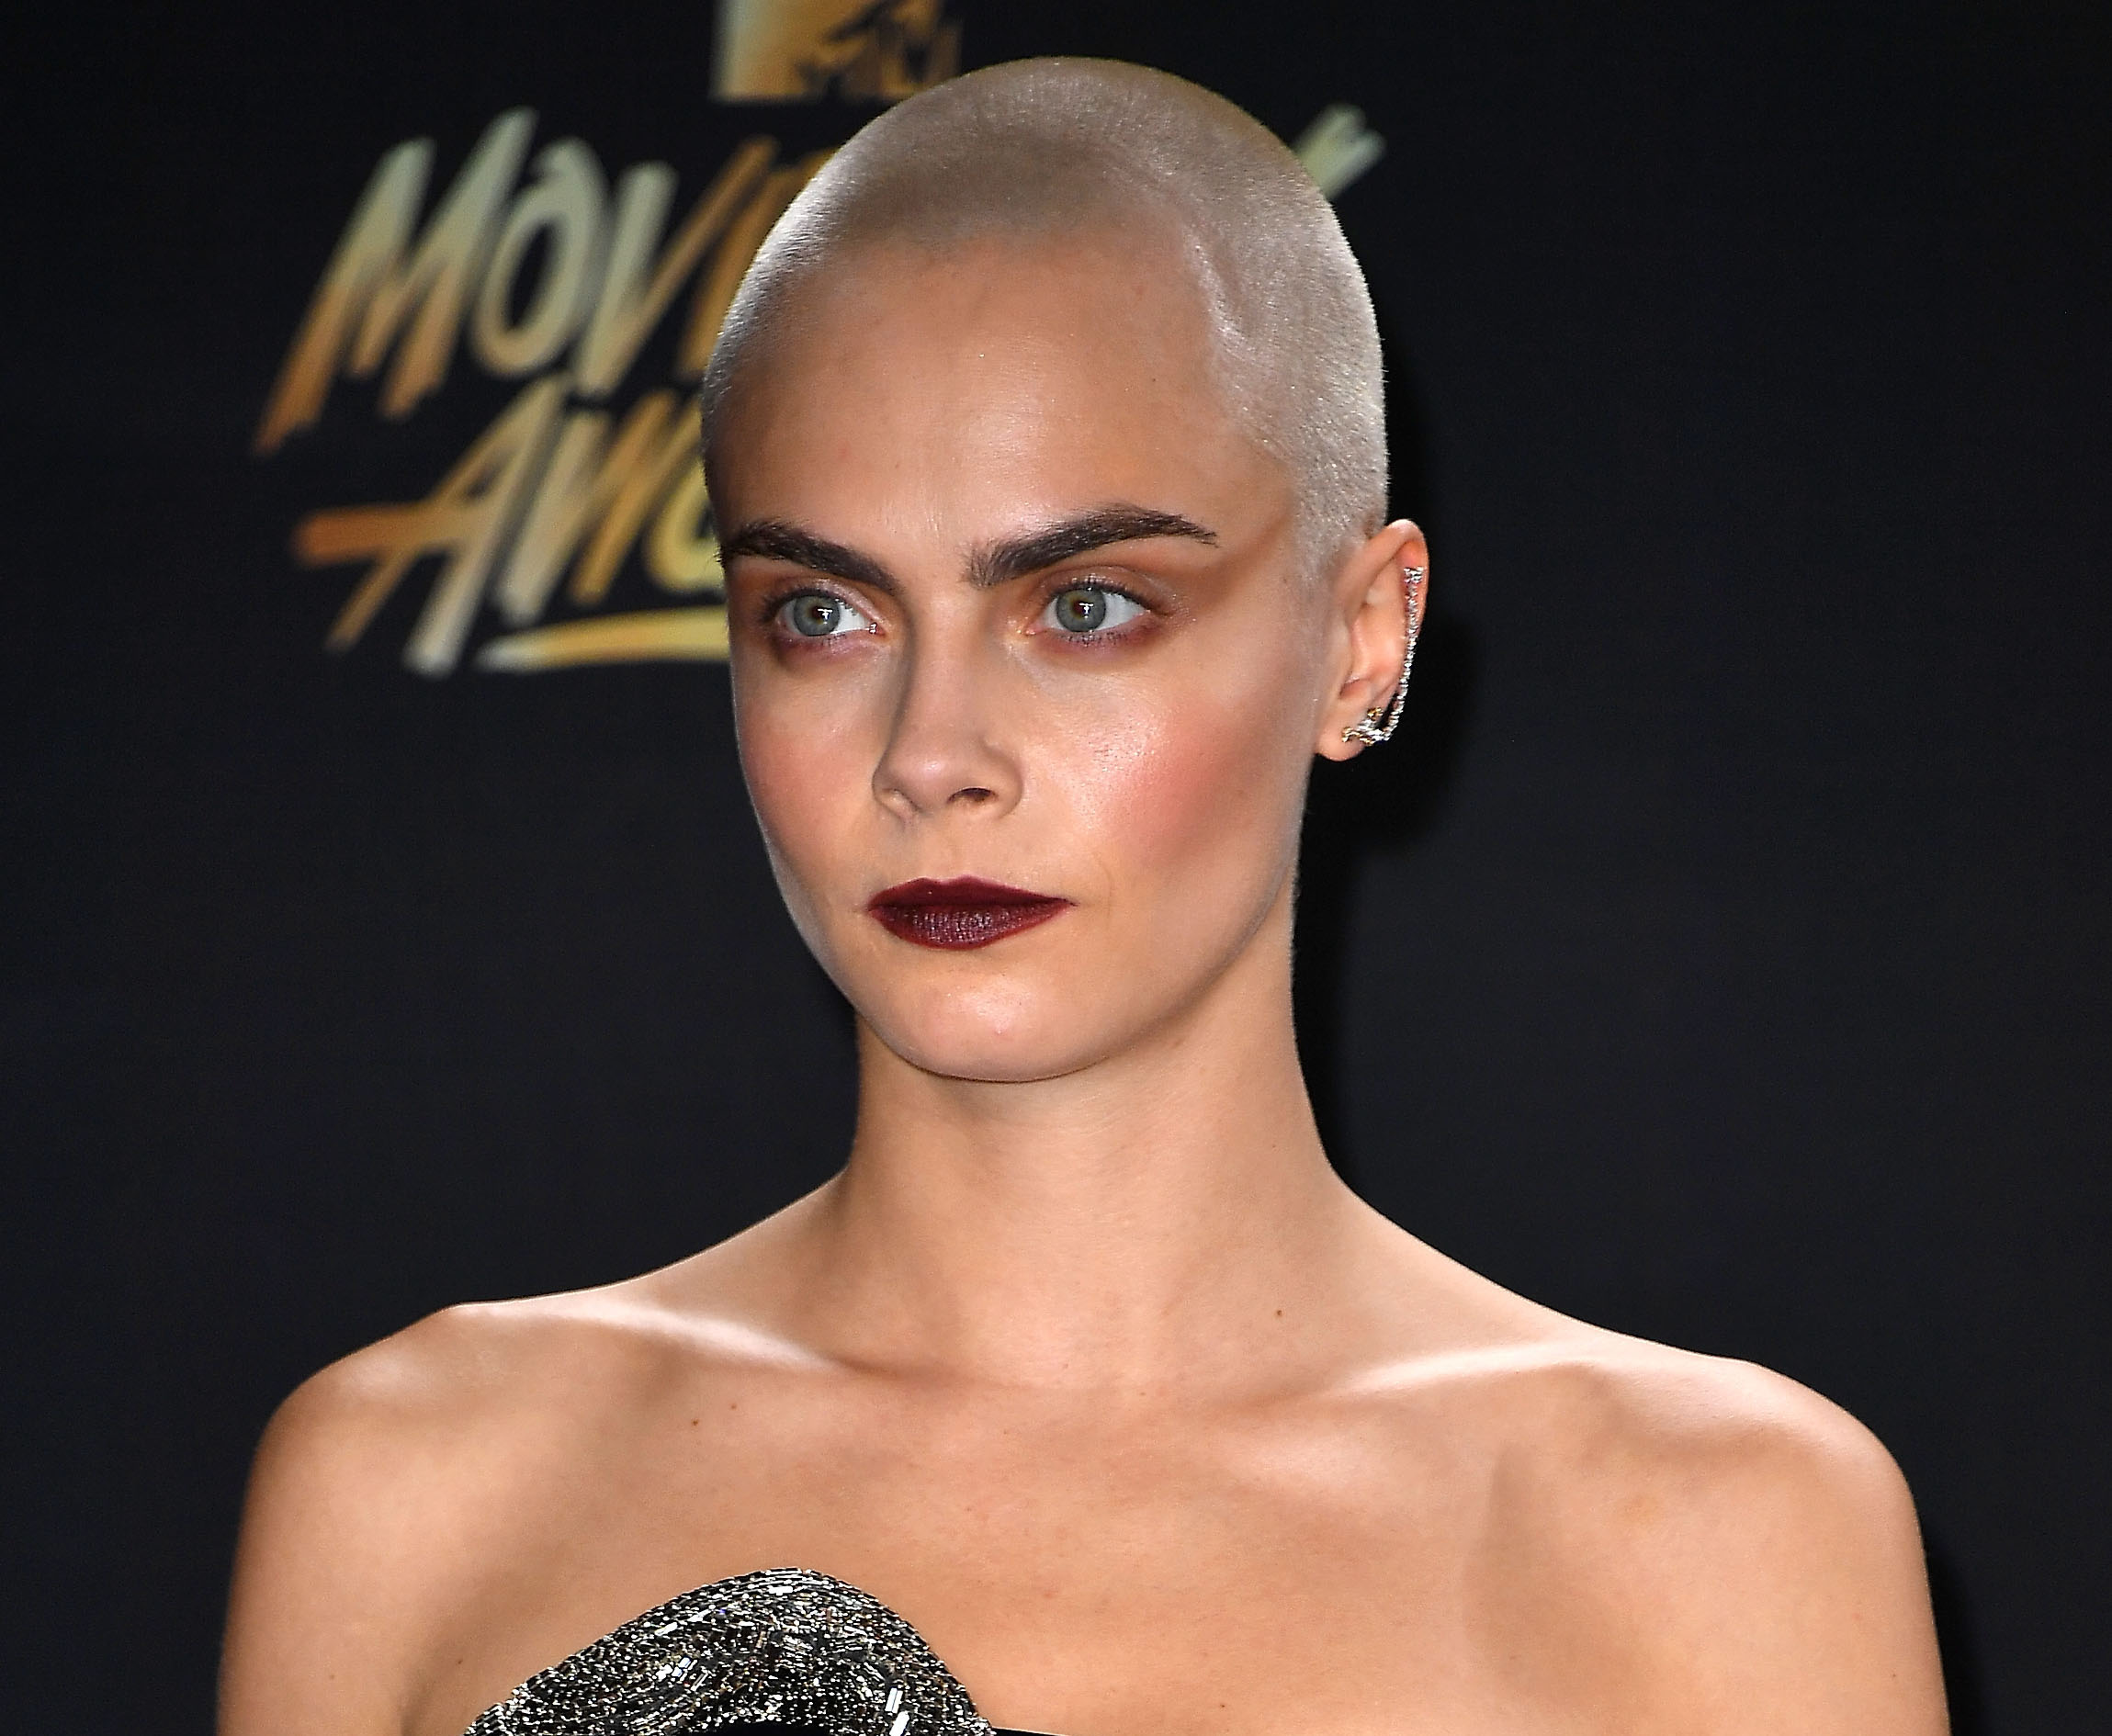 We can't quite figure out where Cara Delevingne's dress begins and ends